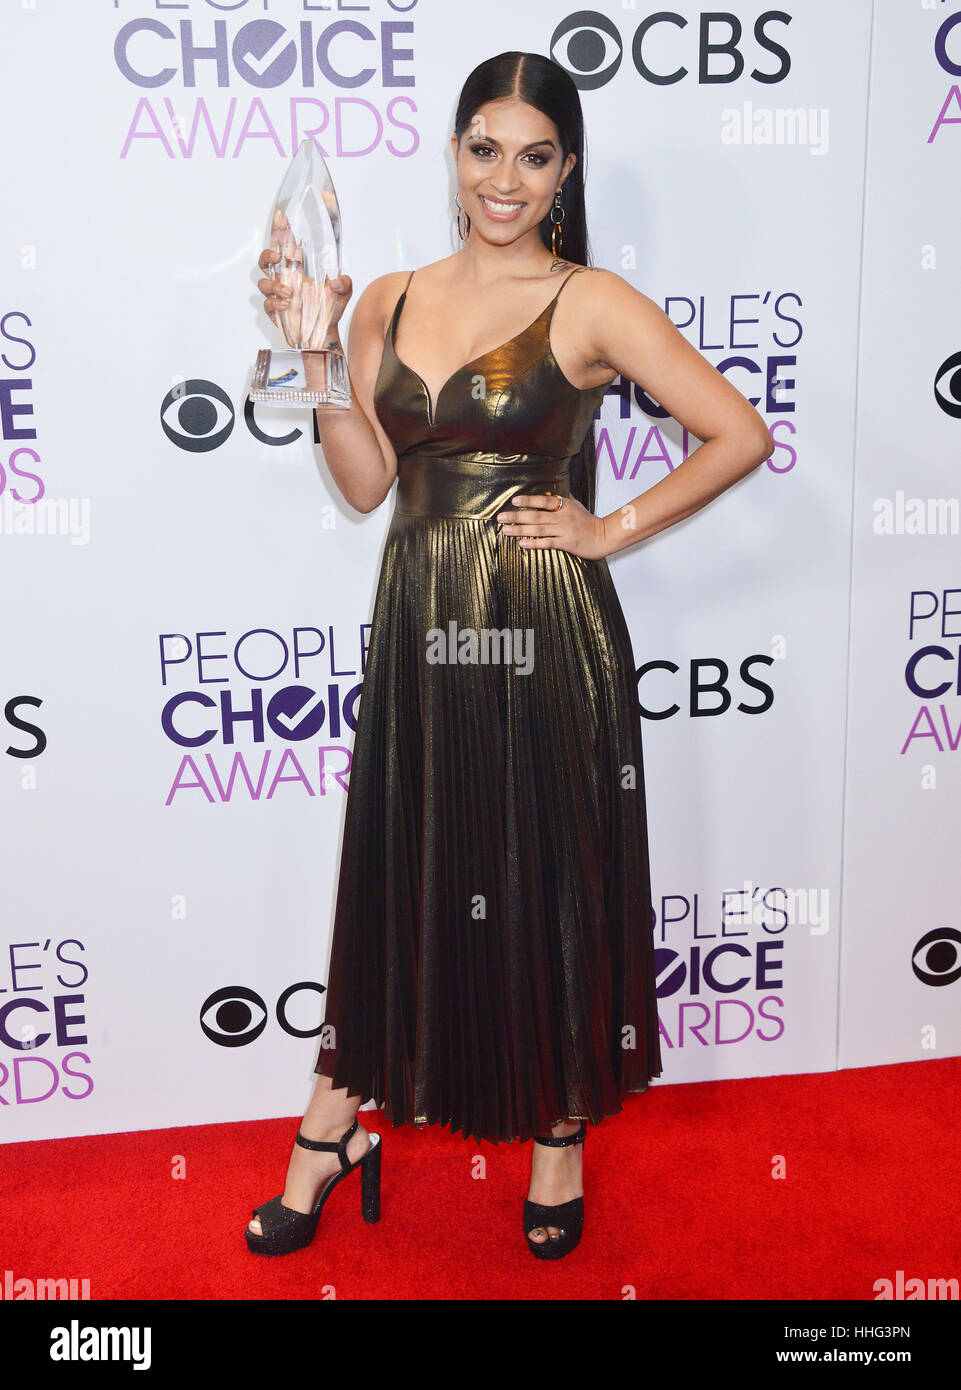 Lilly Singh 269 arriving at the People's Choice Awards 2017 at the Microsoft Theatre in Los Angeles. January 18, Stock Foto